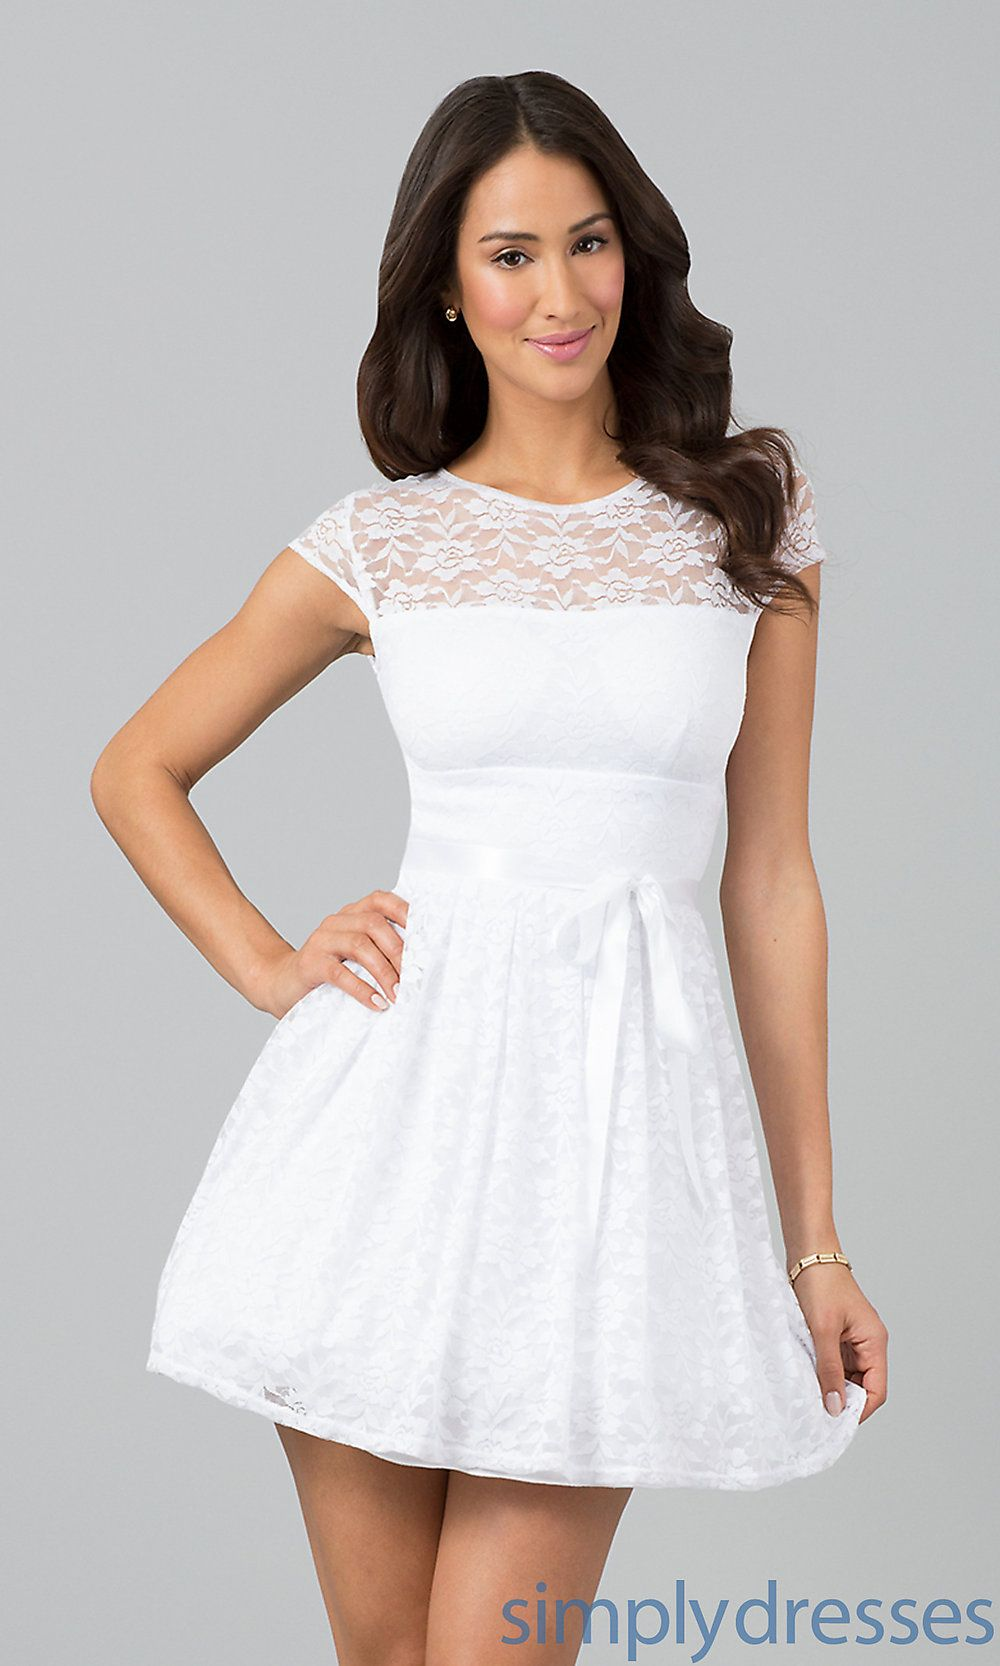 Shop Simply Dresses for Bee Darlin white lace dresses. Buy junior party  dresses for less than  100 for graduation 8d2a0ffb158d